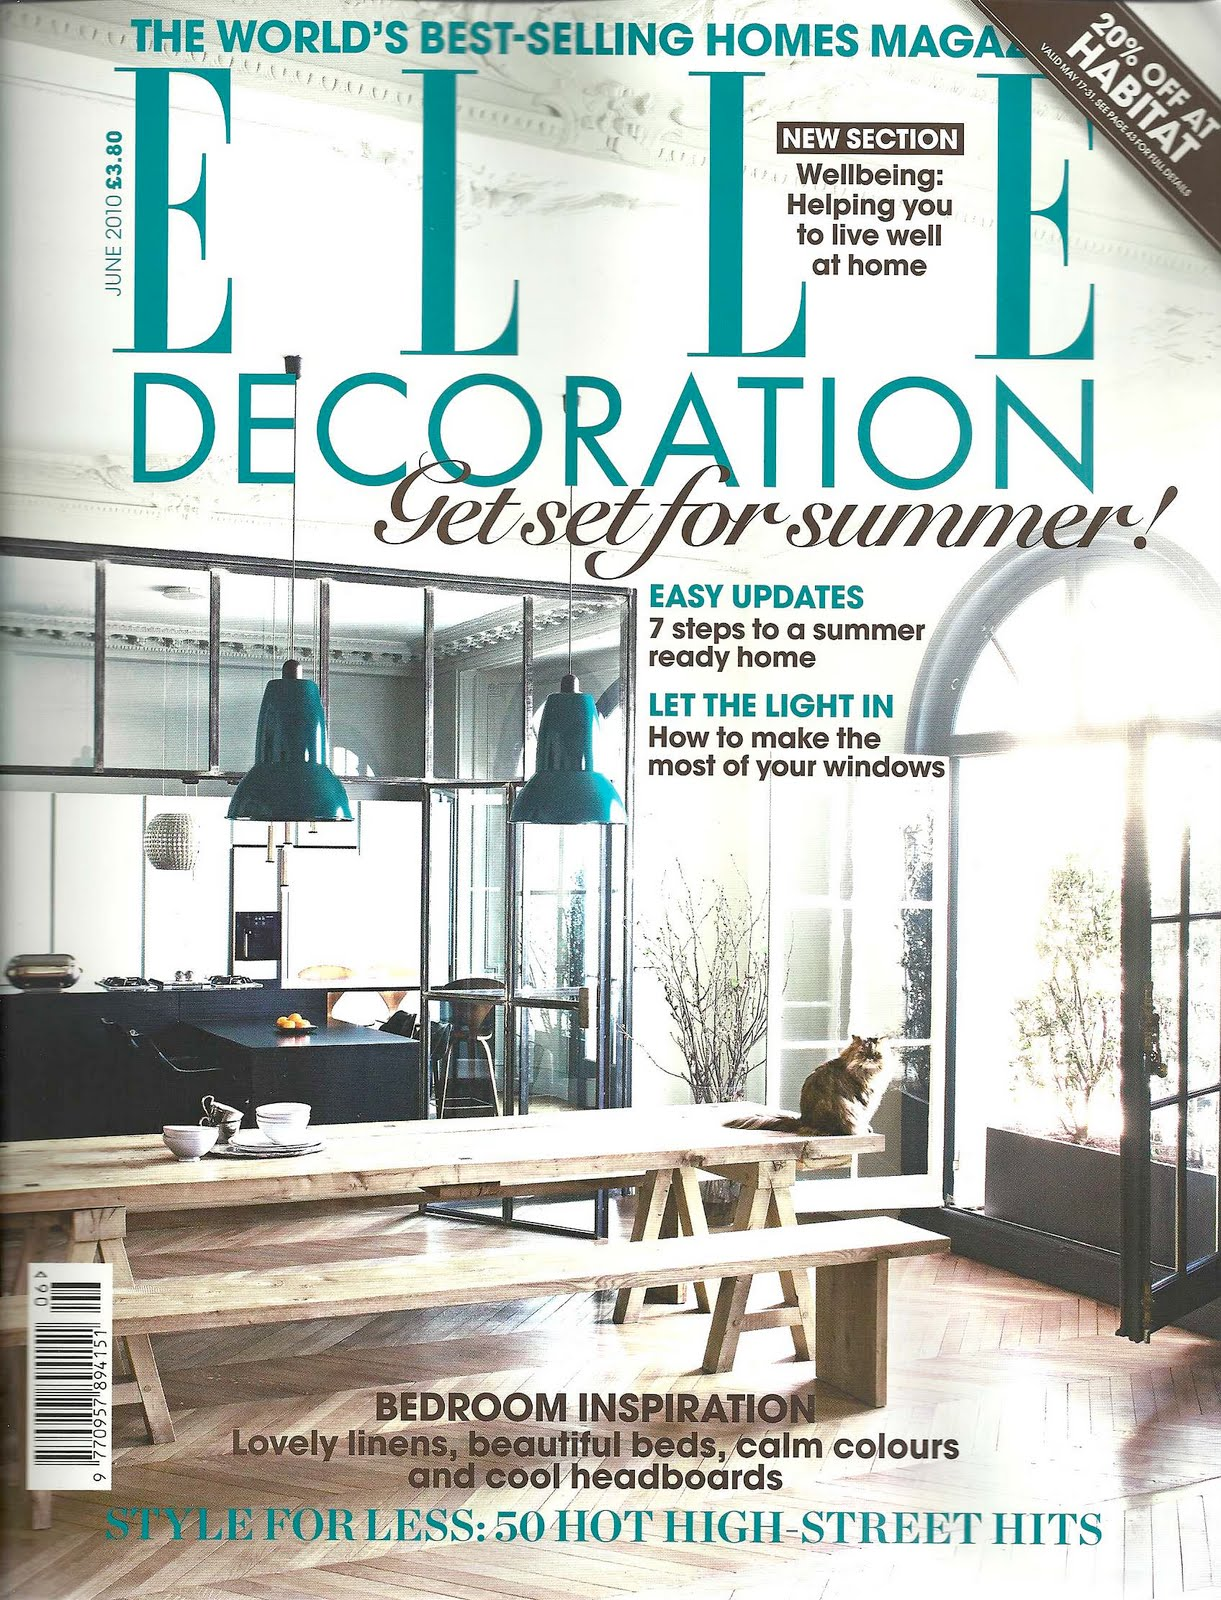 Bright Bazaar Magazine Review Elle Decoration June 2010